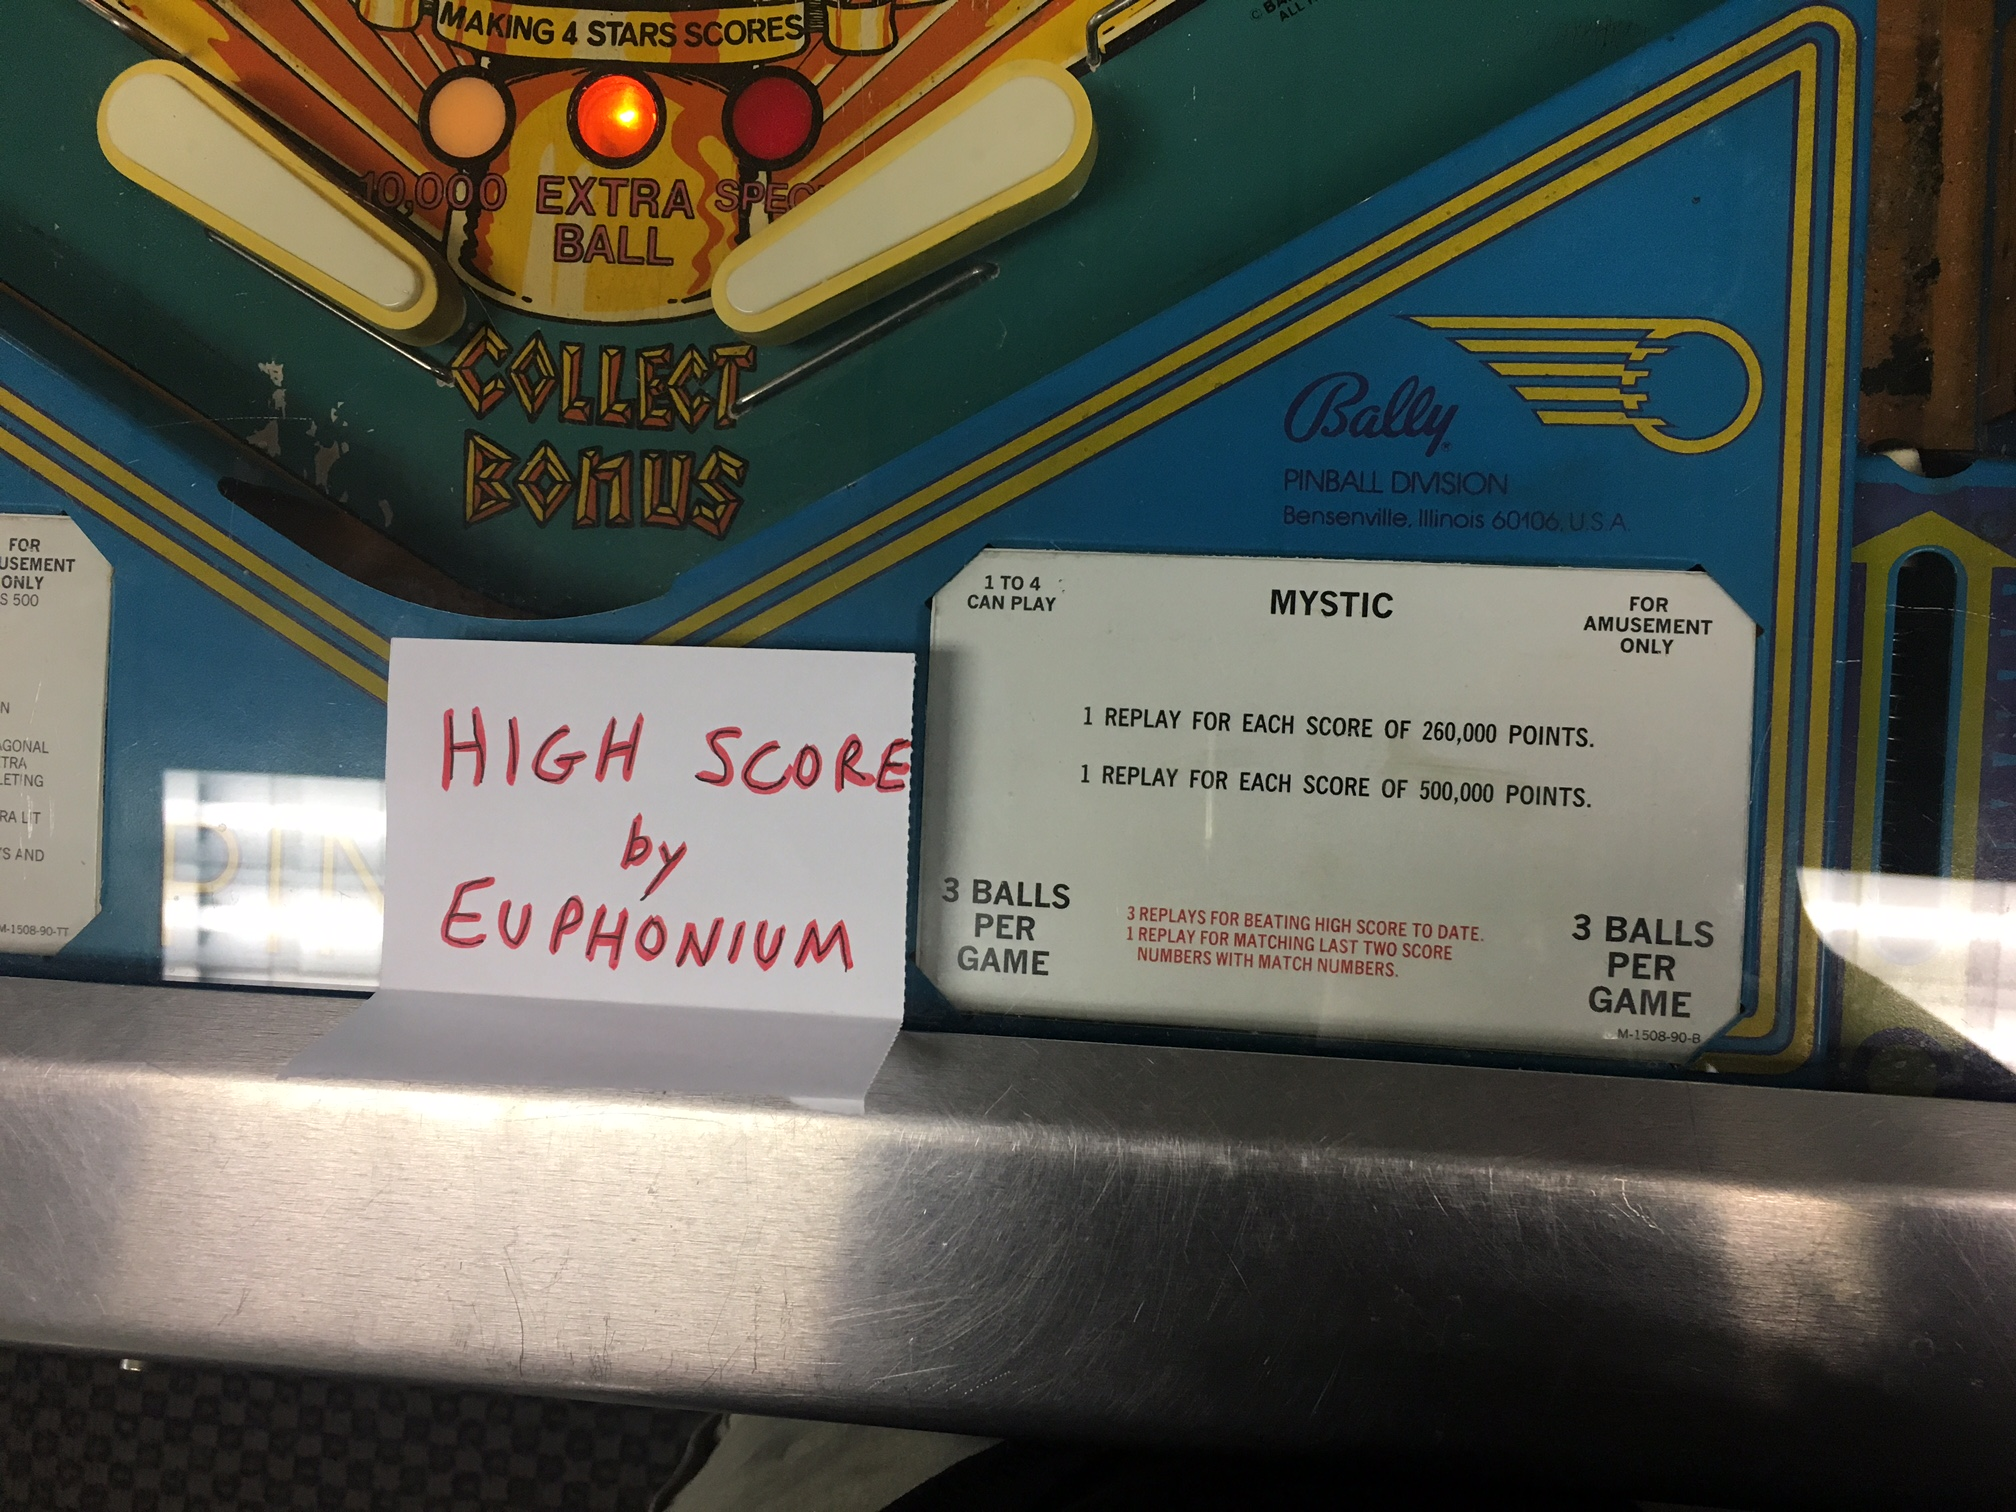 euphonium: Mystic [1980 Pinball] (Pinball: 3 Balls) 117,270 points on 2018-10-03 18:41:25